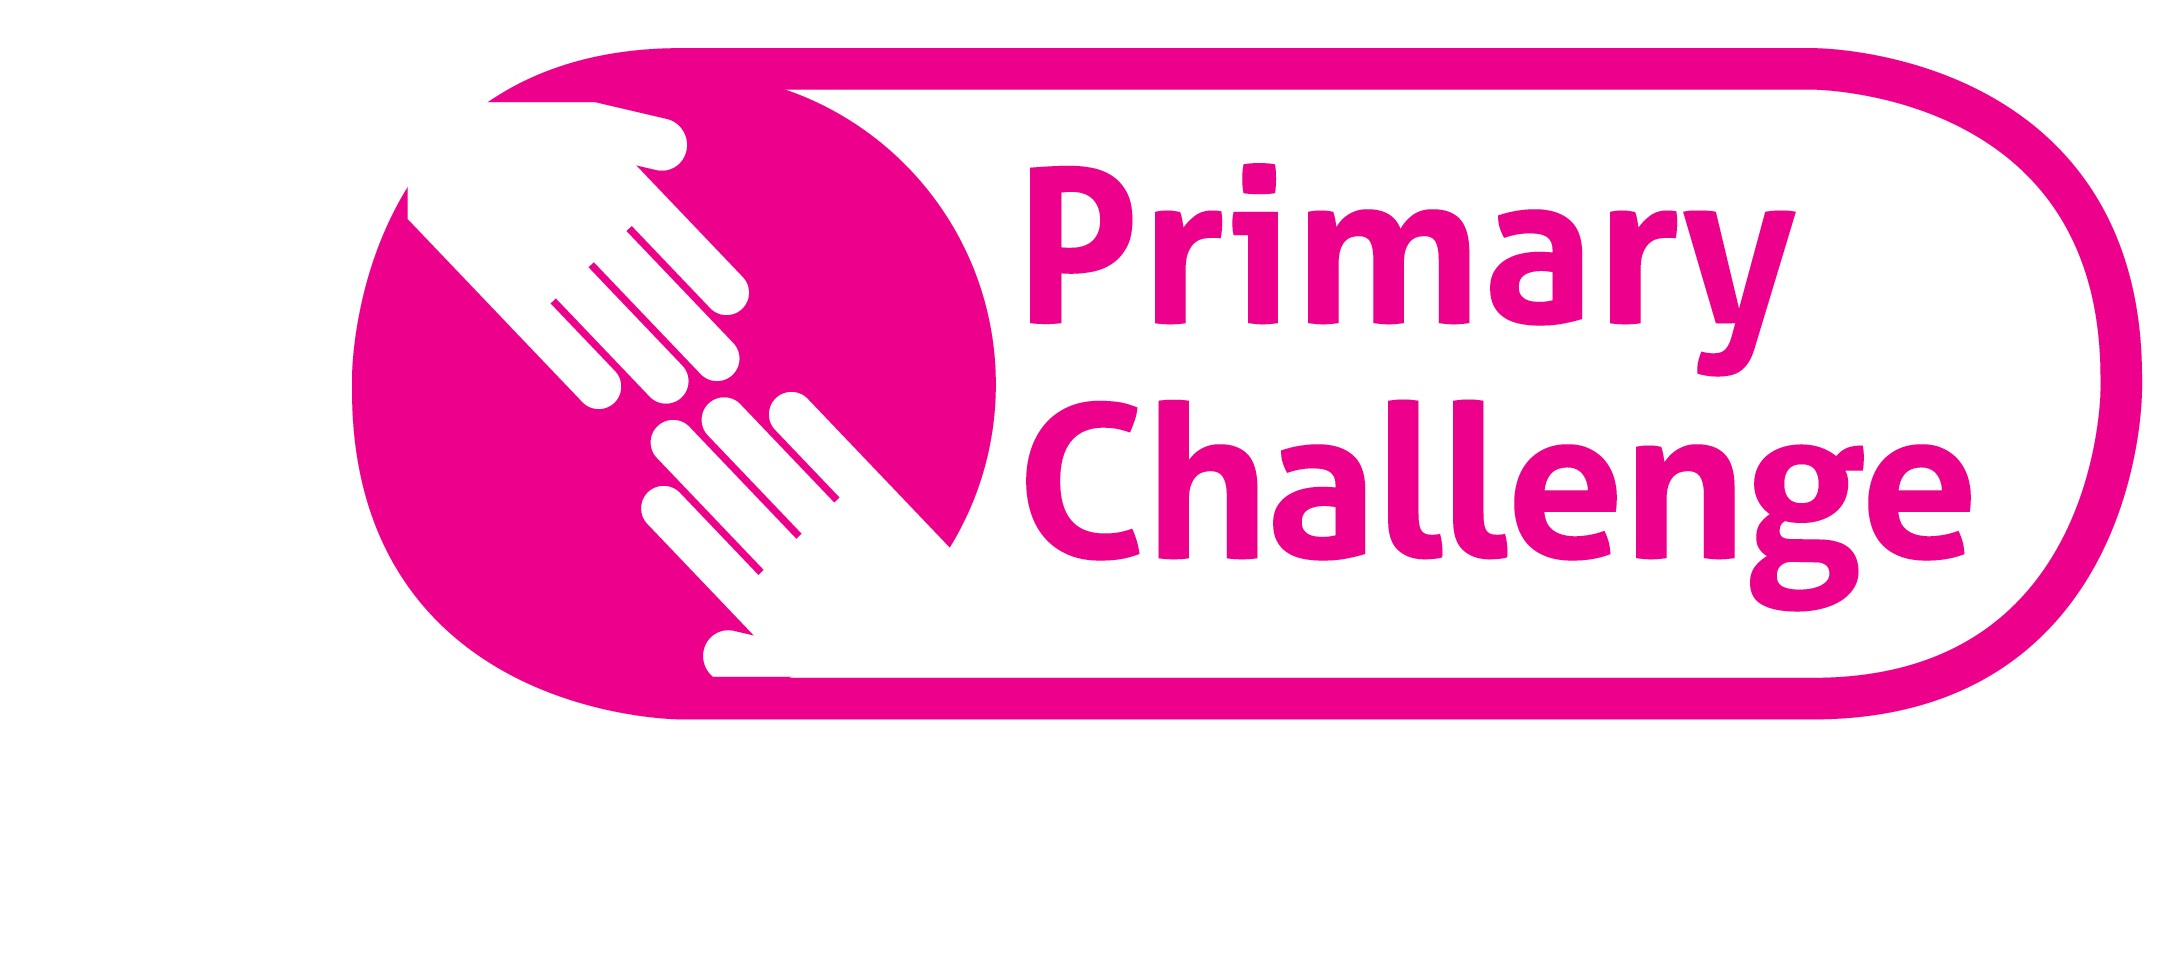 Primary Challenge-formatted.jpg